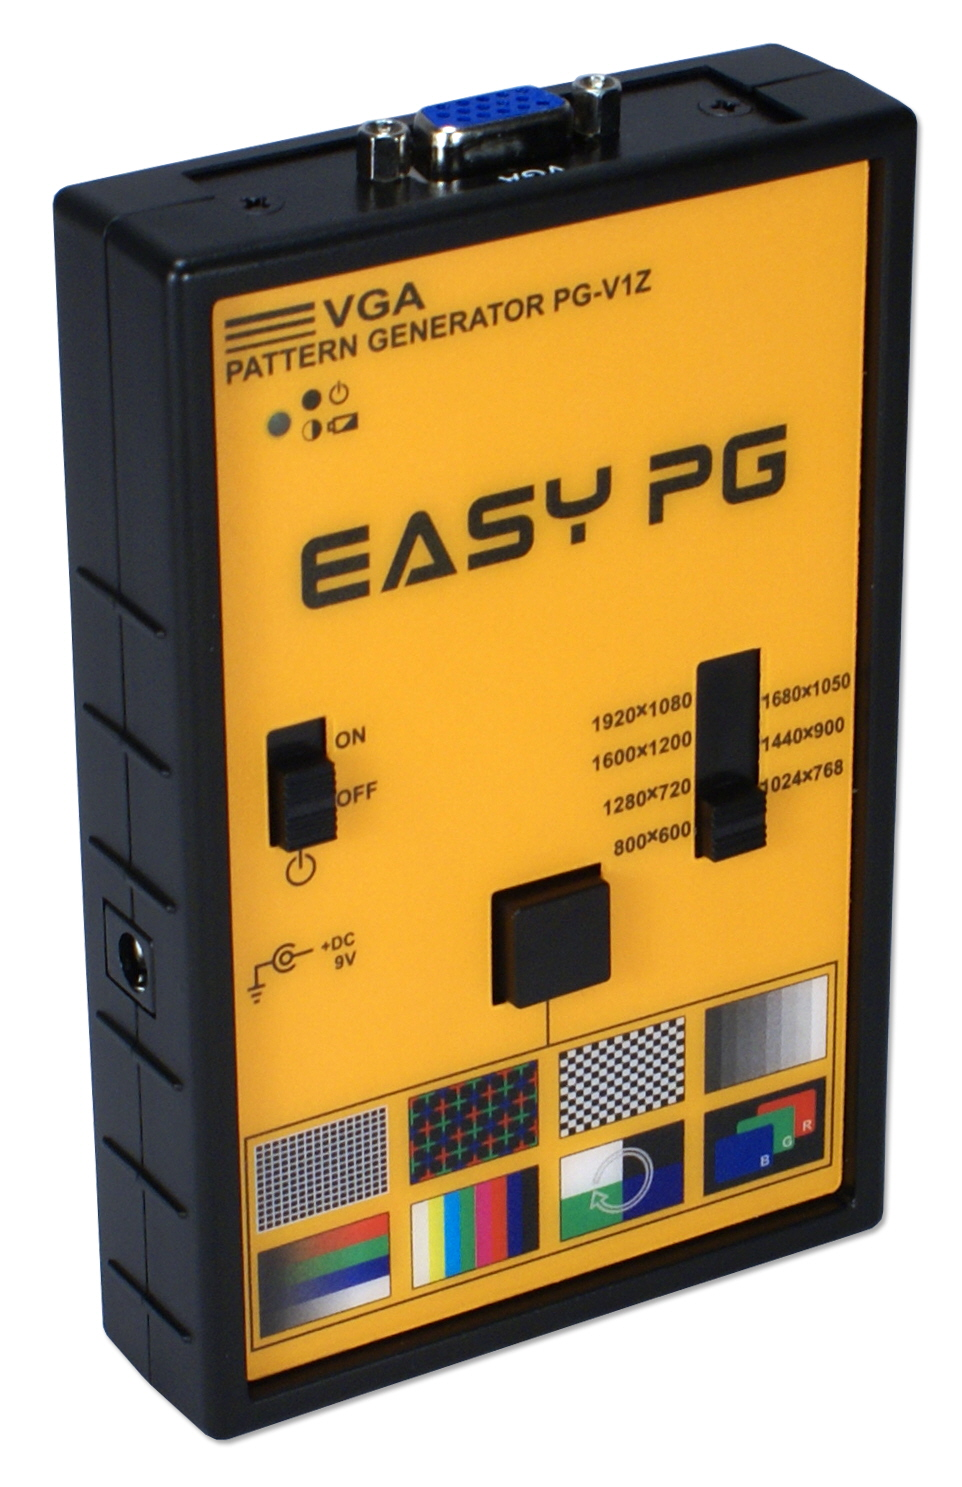 VGA Video Pattern Generator VPG-VL 037229007442 EZ Video Pattern Generator, VGA/WUXGA, 162MHz with 8 patterns and 7 different screen resolutions, HD15 Female PG-V1Z 0000415778 KV6460 VPGVL VPG-VL      3922 IMCE microcenter Richard Eckert Discontinued